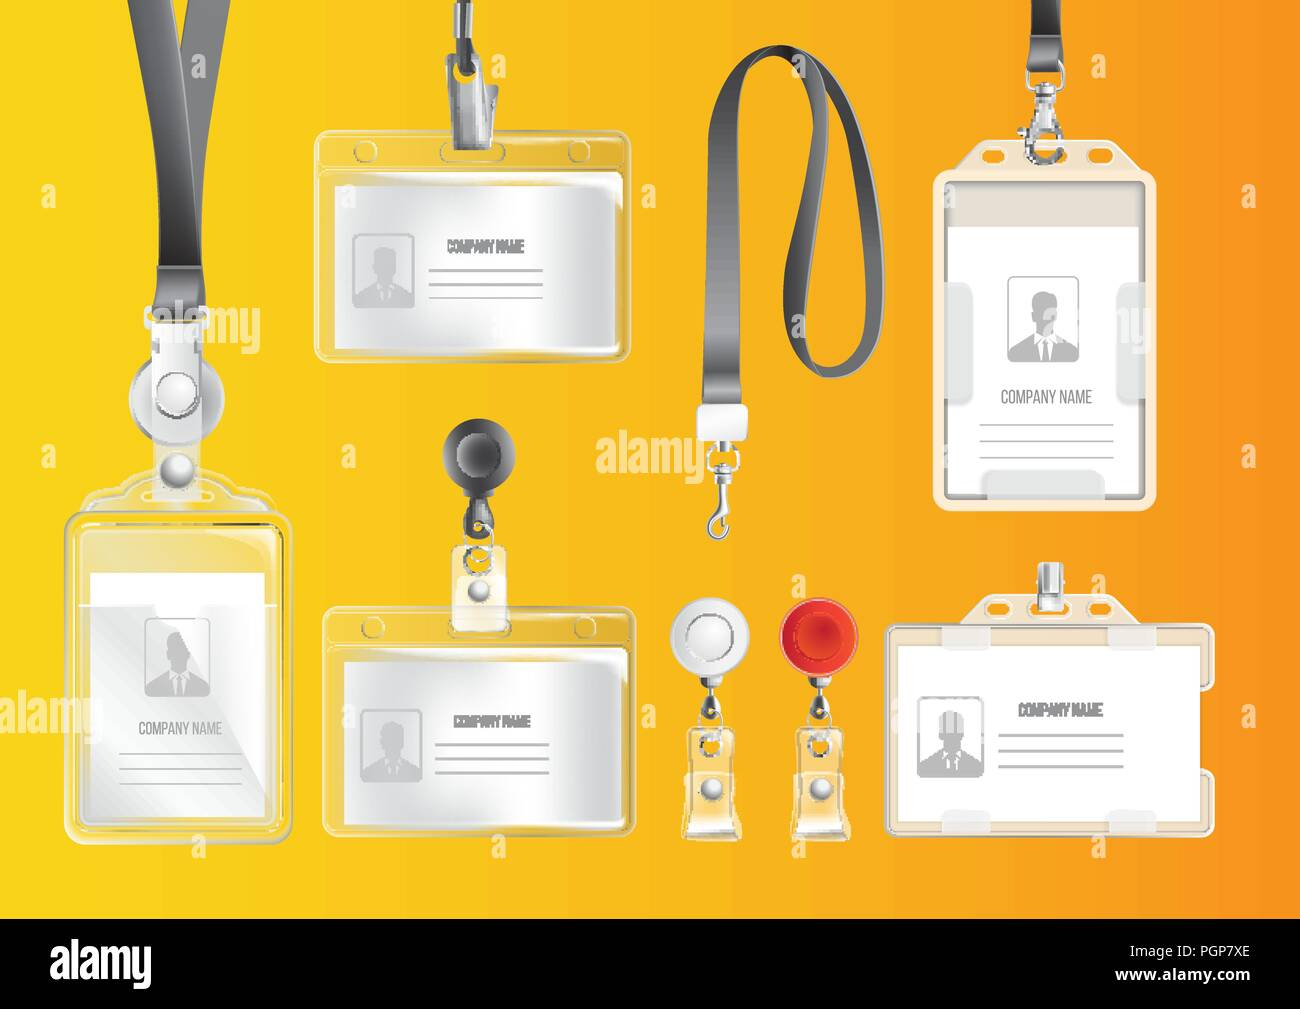 Set of badges and ID cards - Stock Image